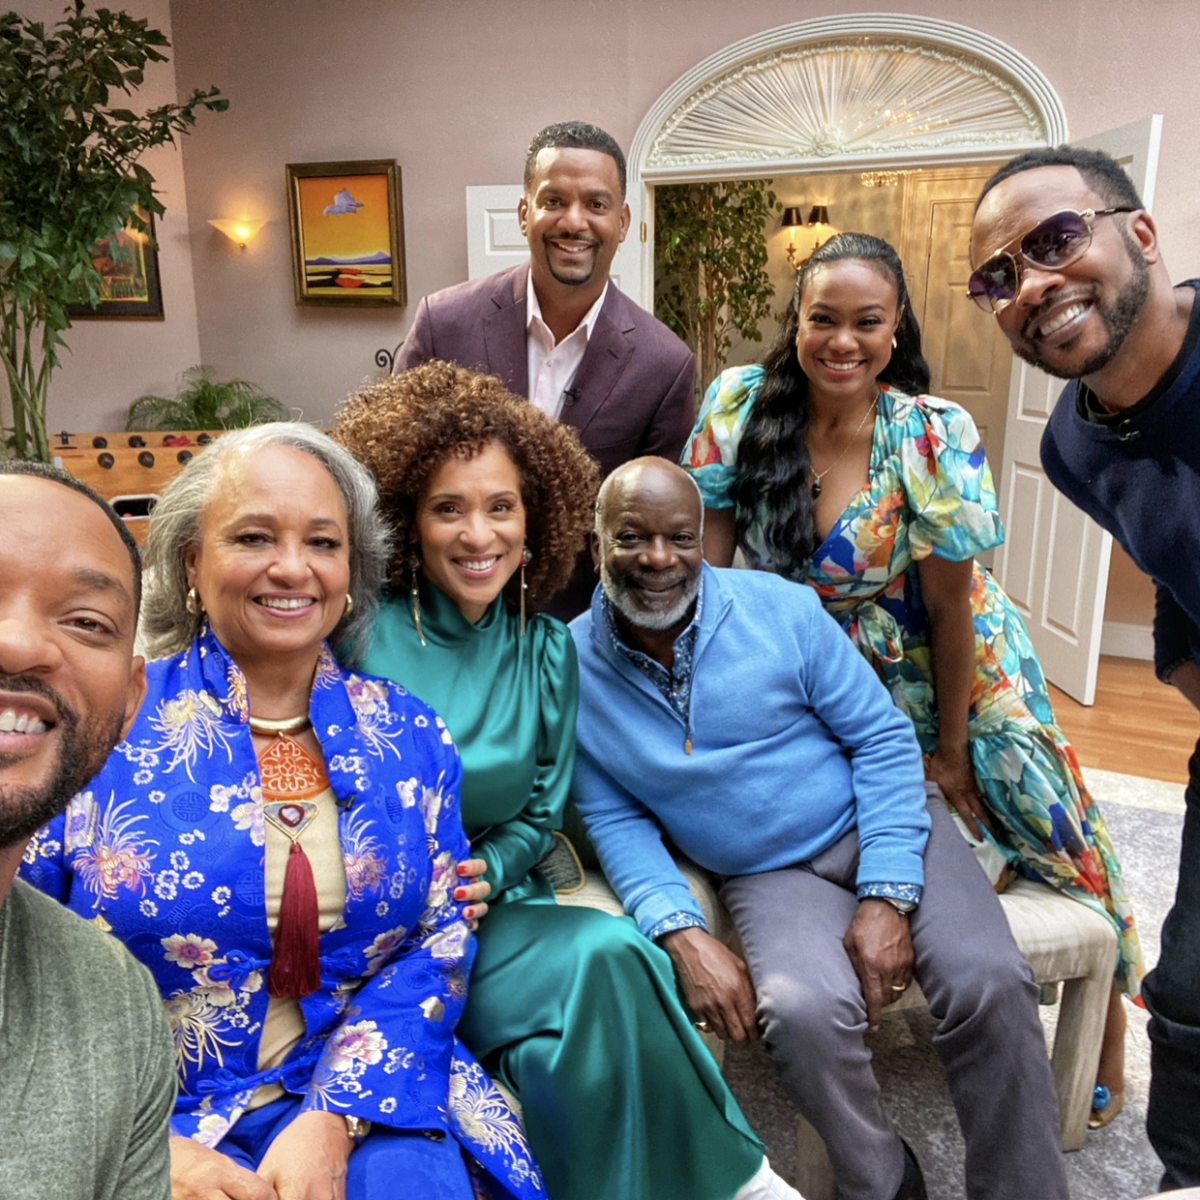 'The Fresh Prince of Bel-Air' Reunion Reveals Two Cast Members Turned The Gig Down